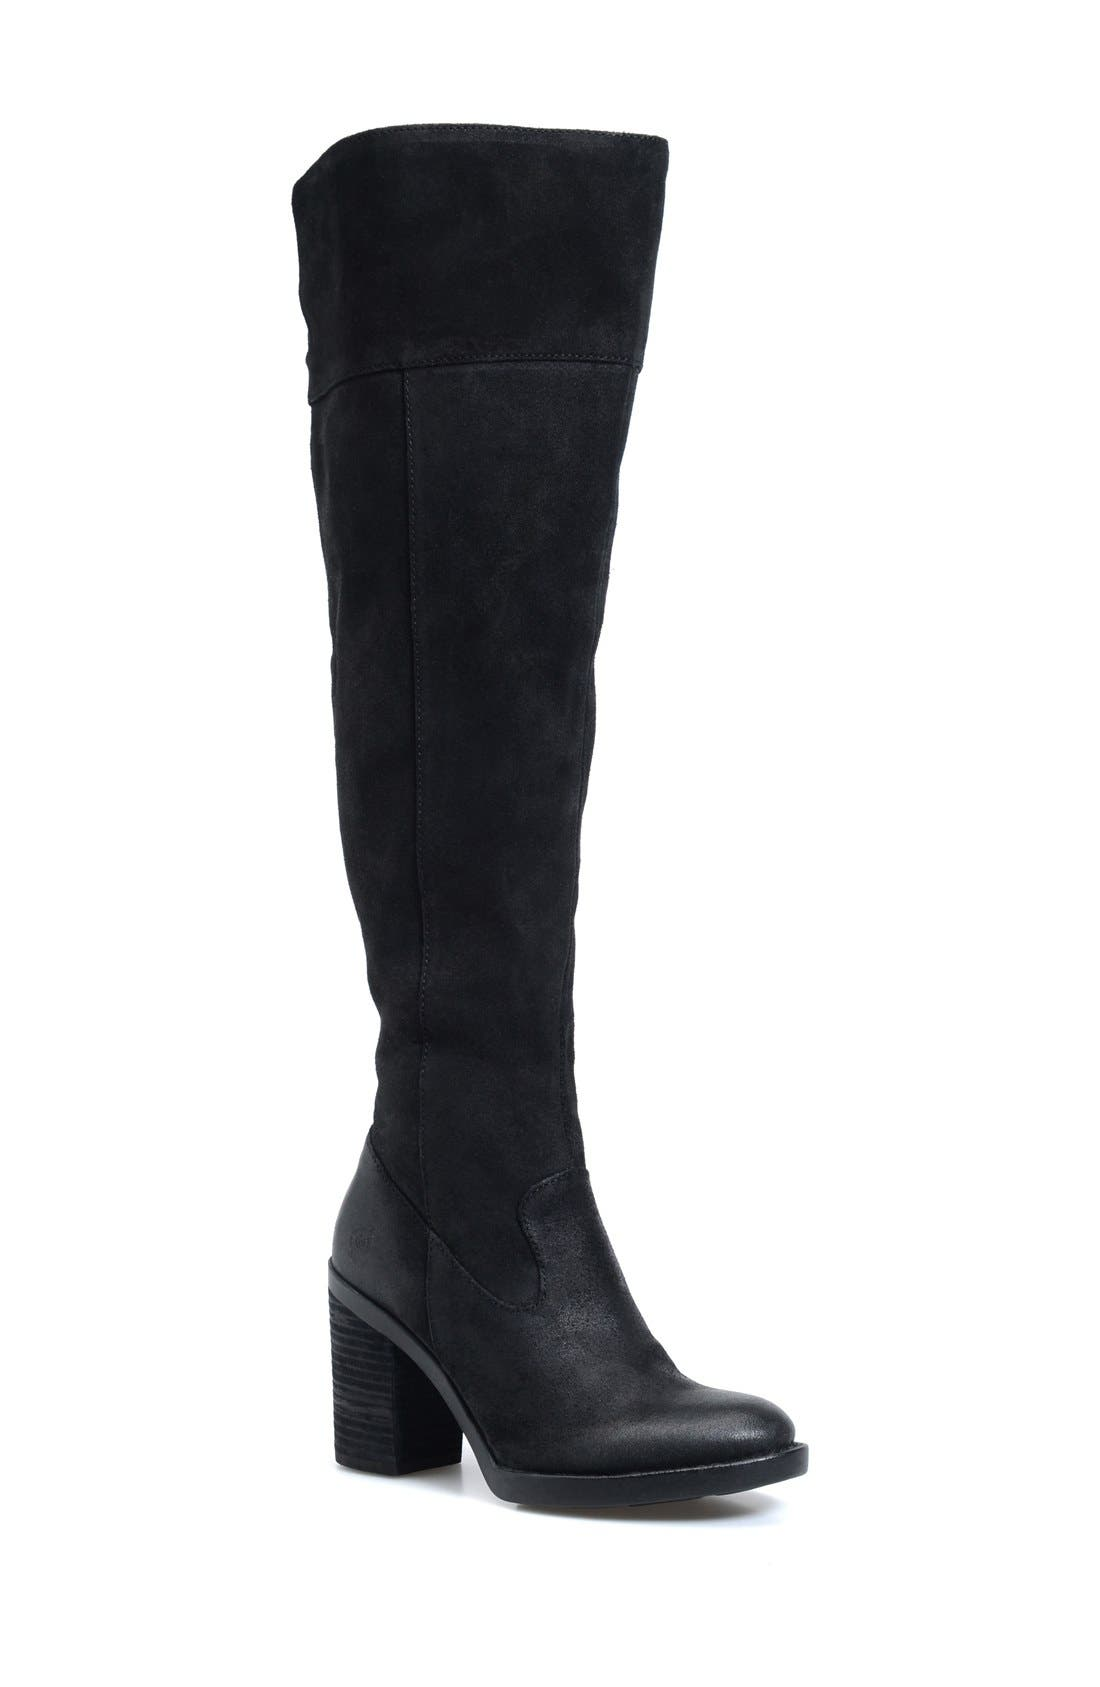 'Kathleen' Over the Knee Boot,                             Main thumbnail 1, color,                             001